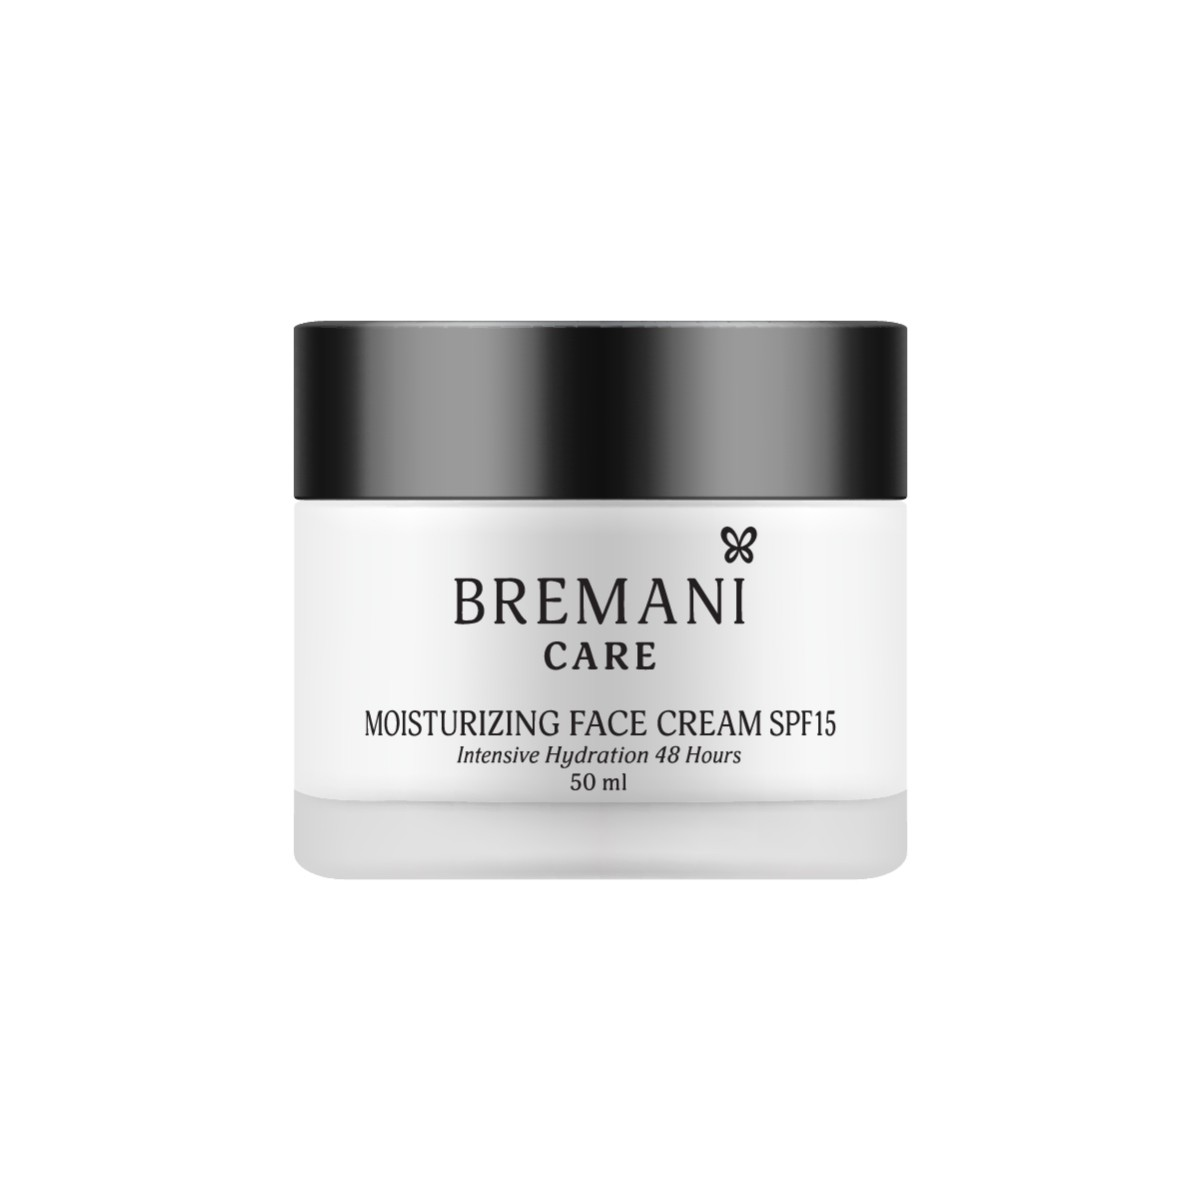 Moisturizing Face Cream. Intensive Hydration 48 Hours. SPF15